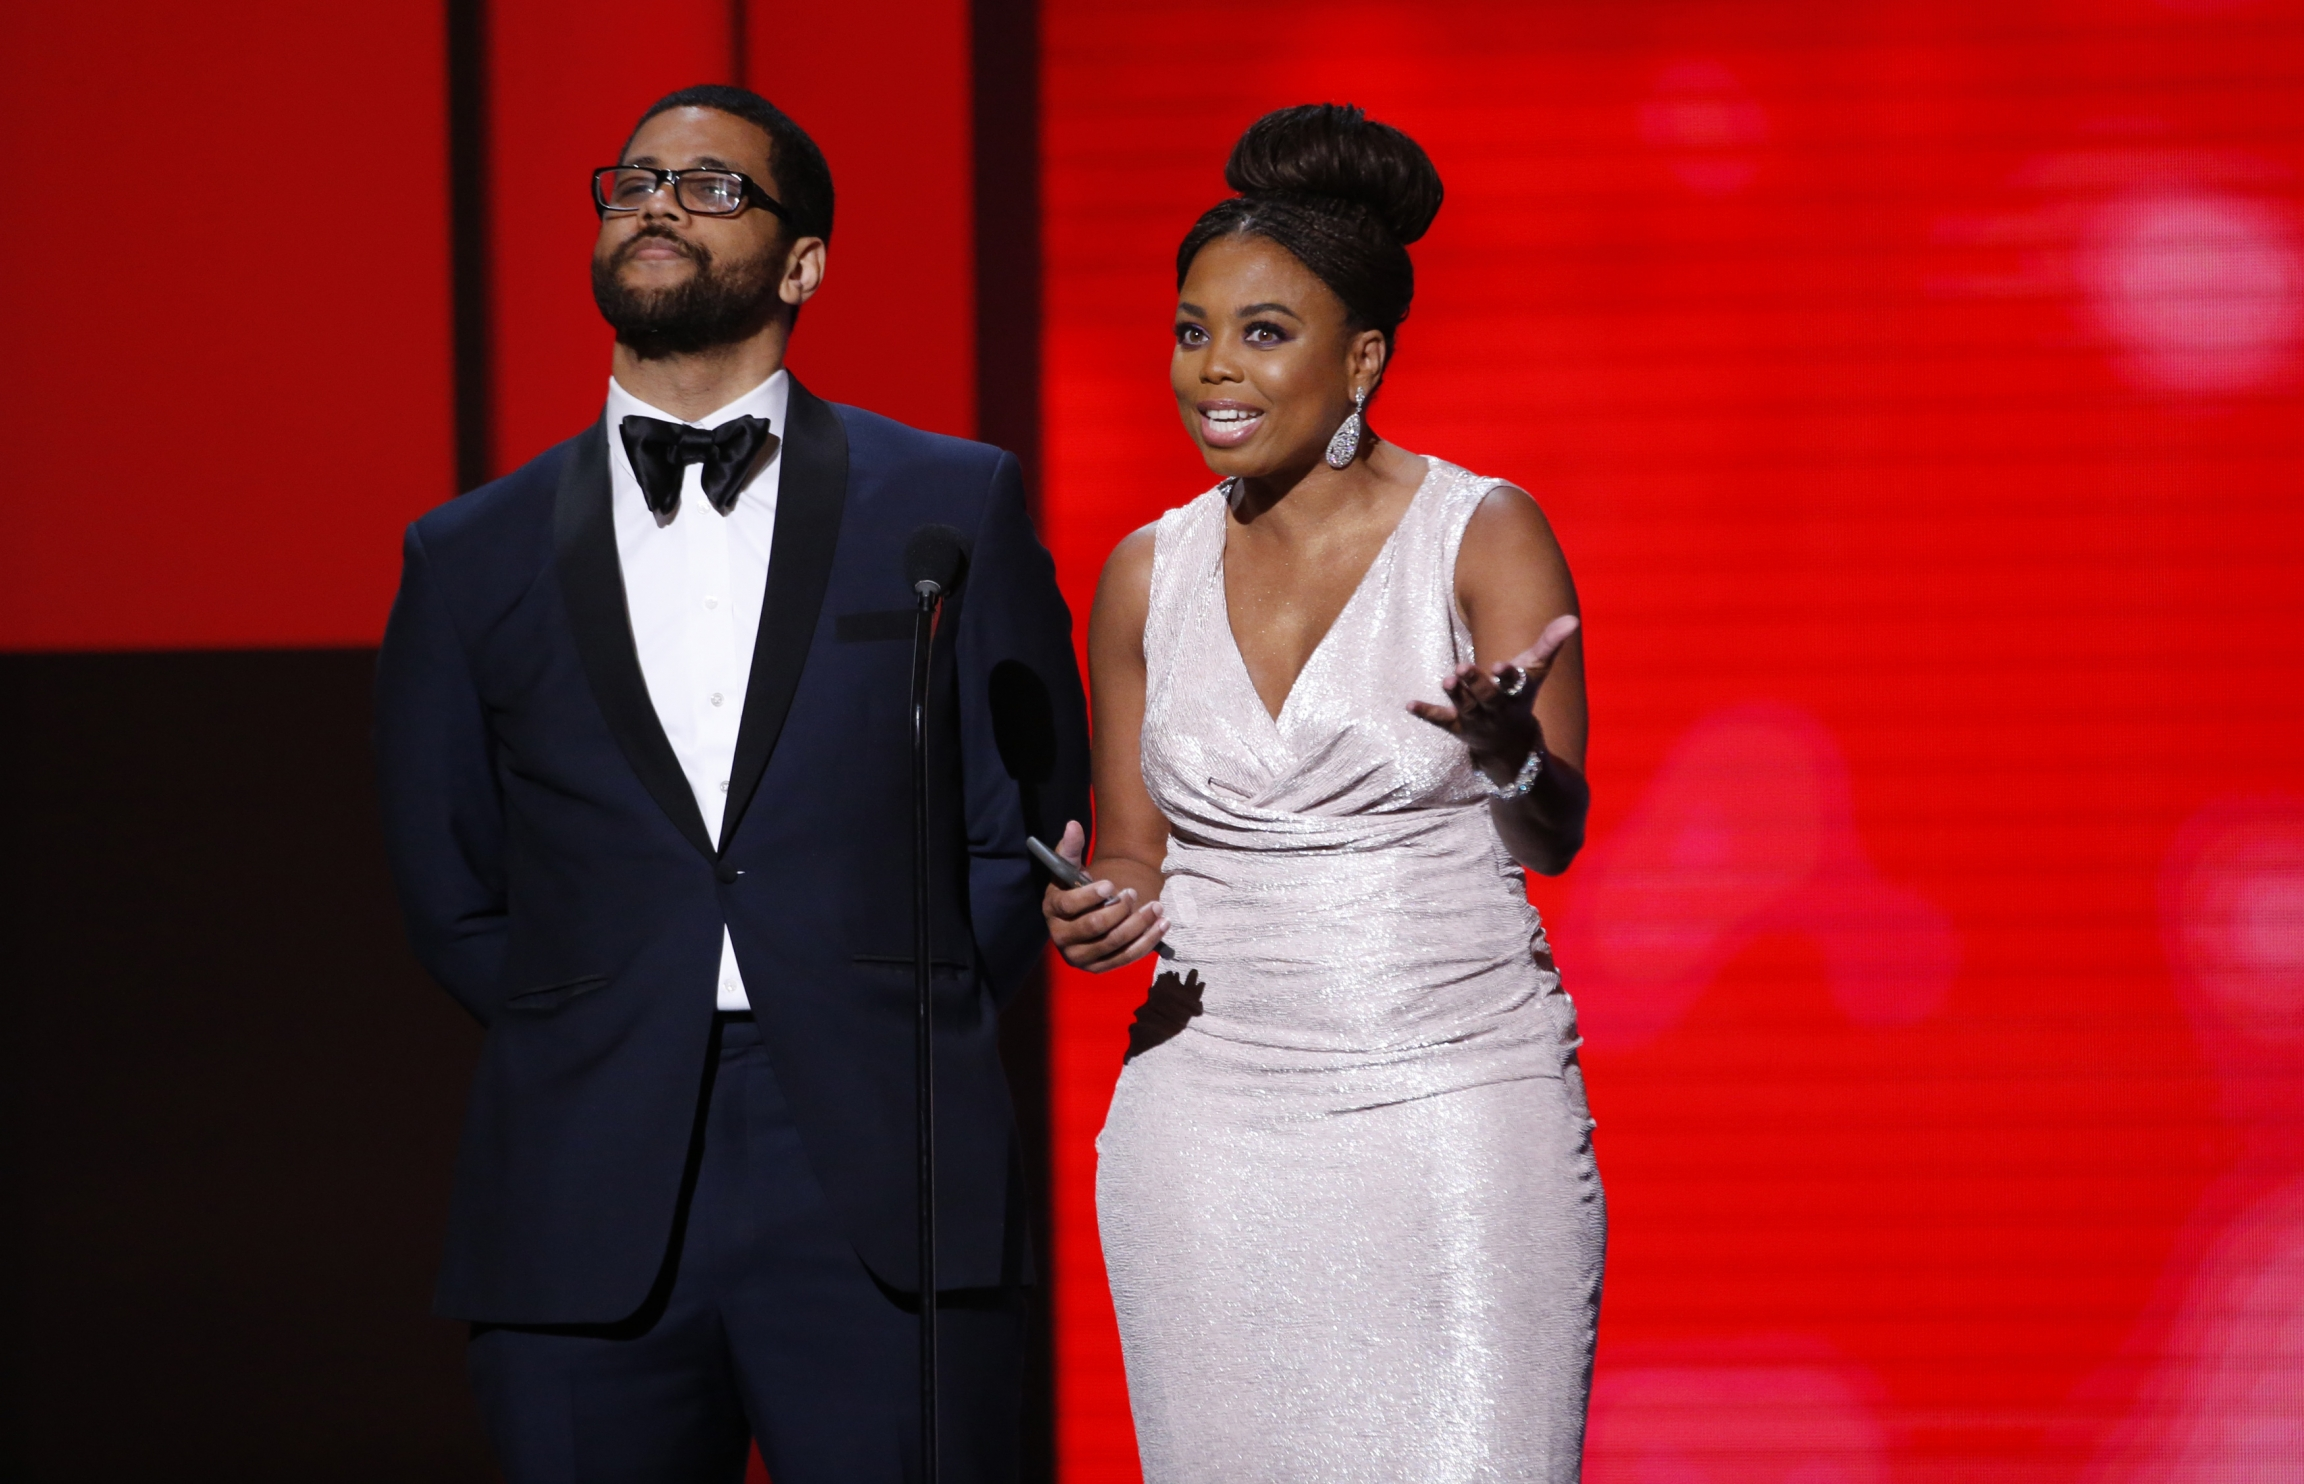 Presenters Jemele Hill and Michael Smith speak on stage at 49th NAACP Image Awards.